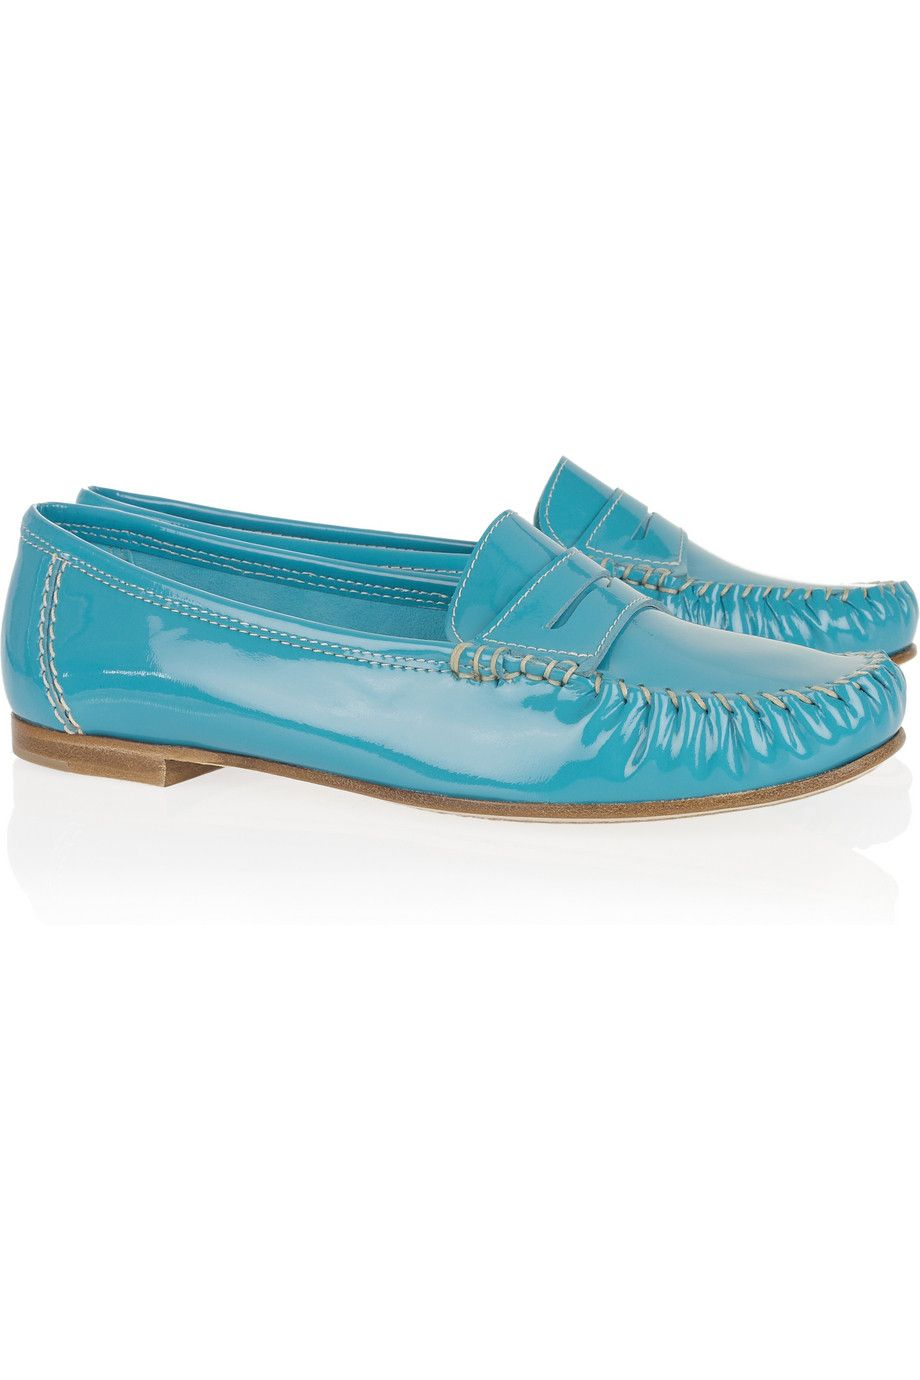 A beautiful colour and a comfortable style. Sigh. Brian Atwood Hampton patent-leather penny loafers at THE OUTNET